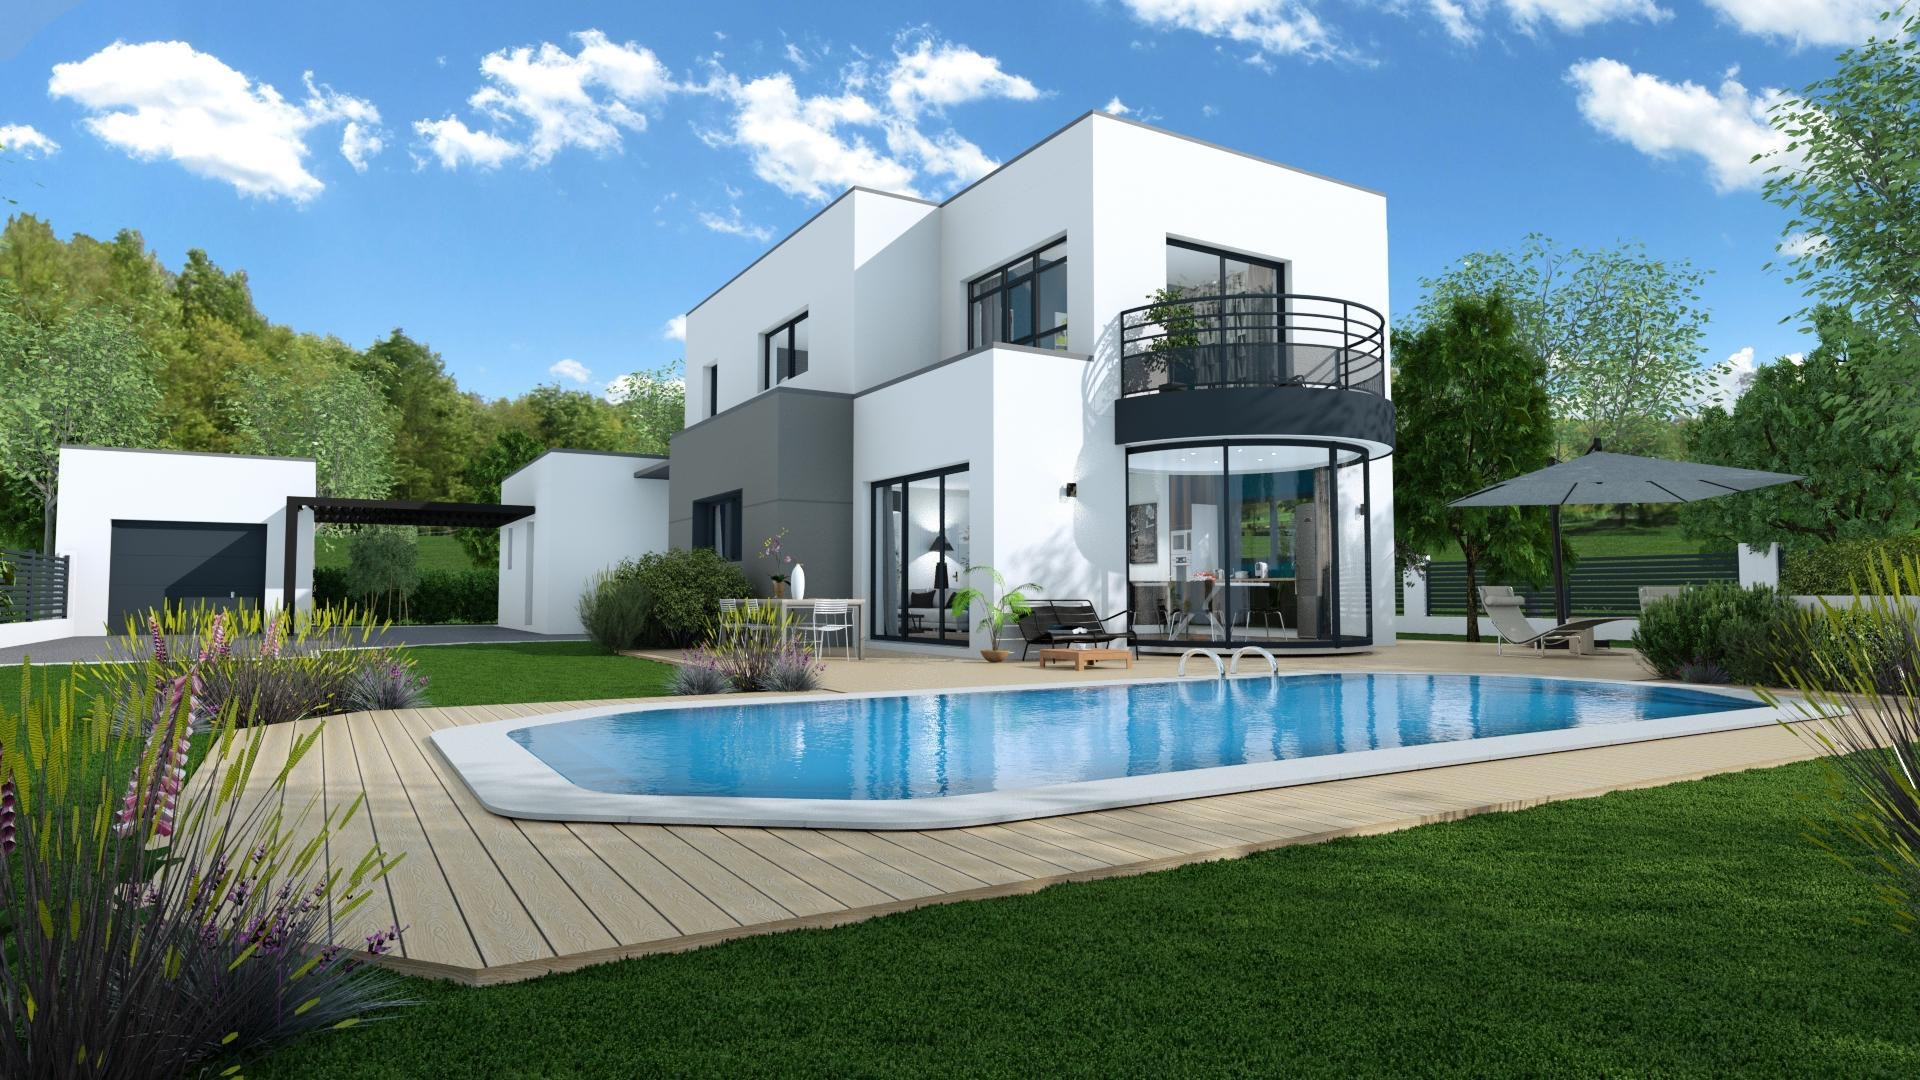 Post Up Your Renderings!-exterior_house_pool.jpg